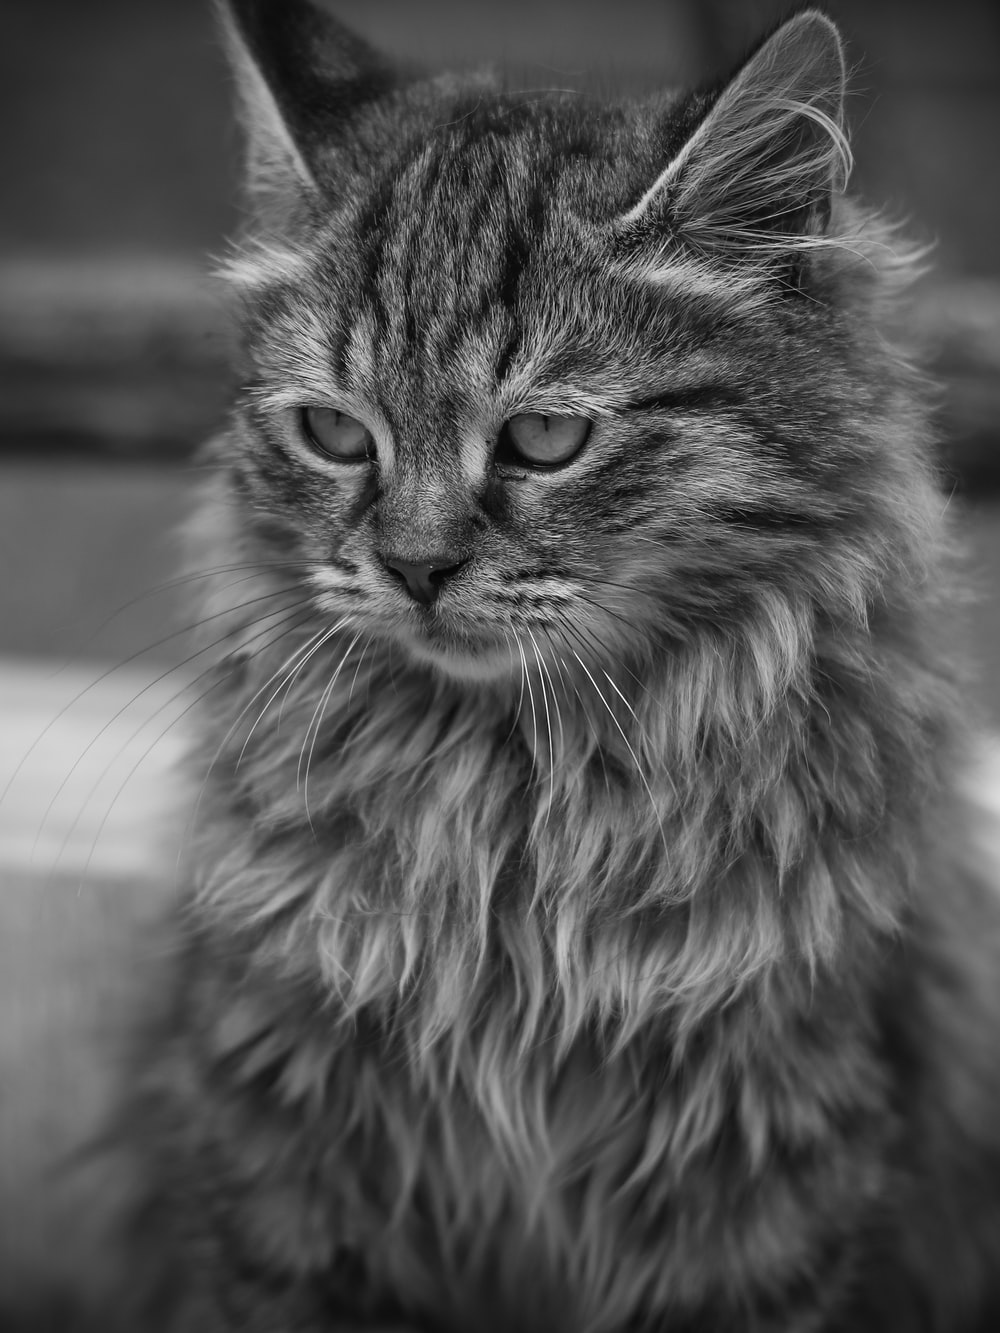 grayscale photo of long fur cat